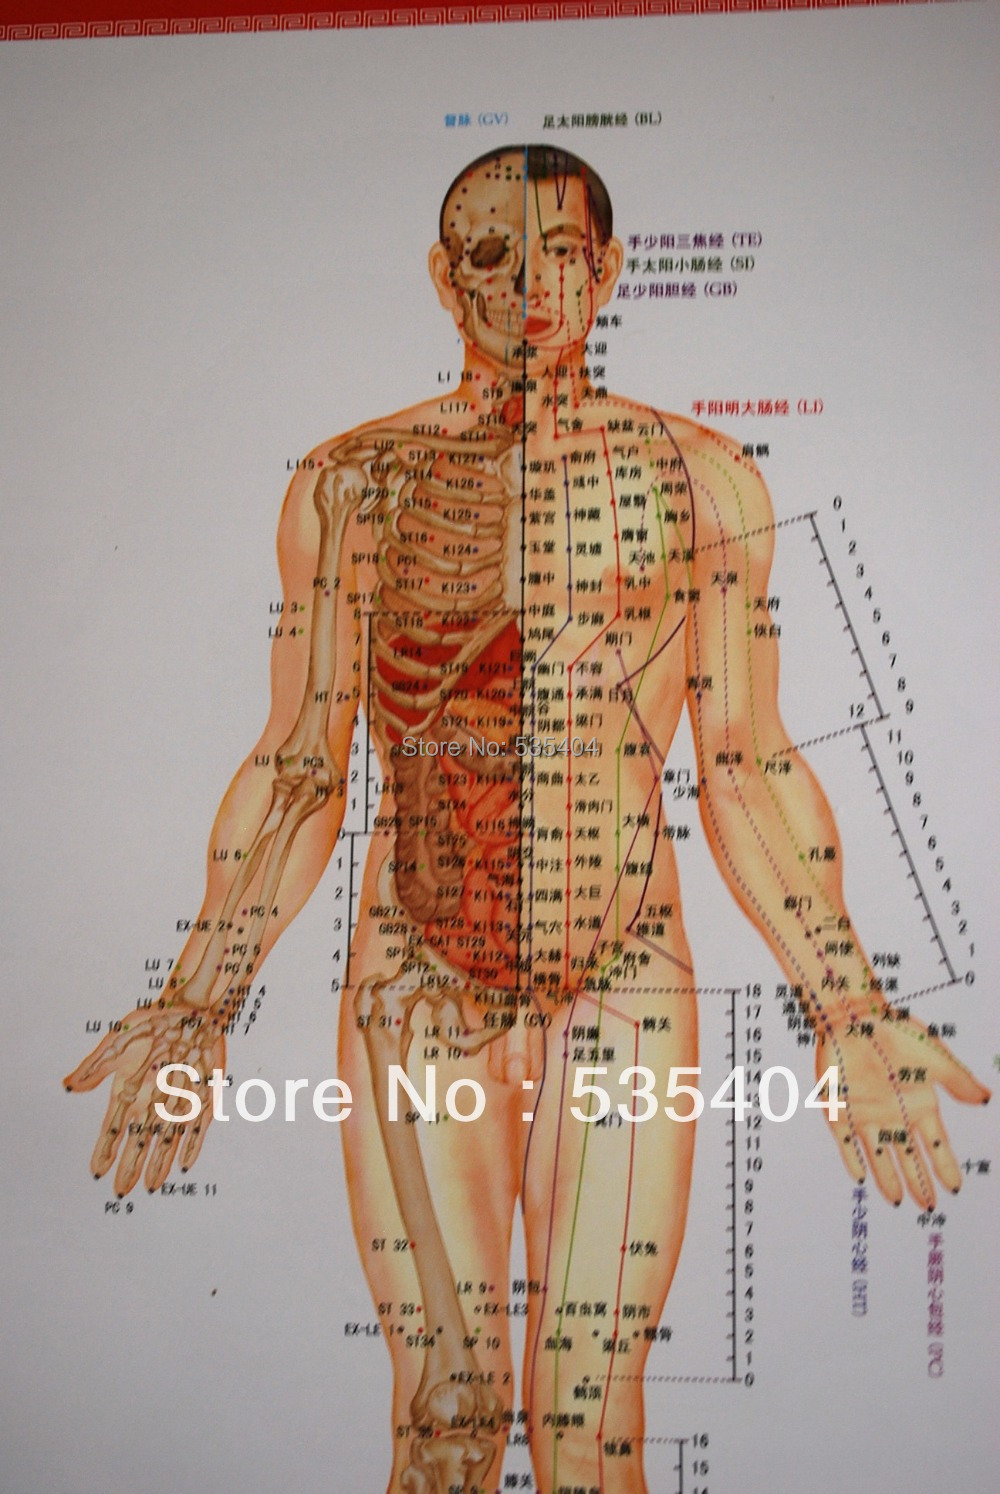 7 Poster Charts Acupuncture Human Body Charts Meridians And